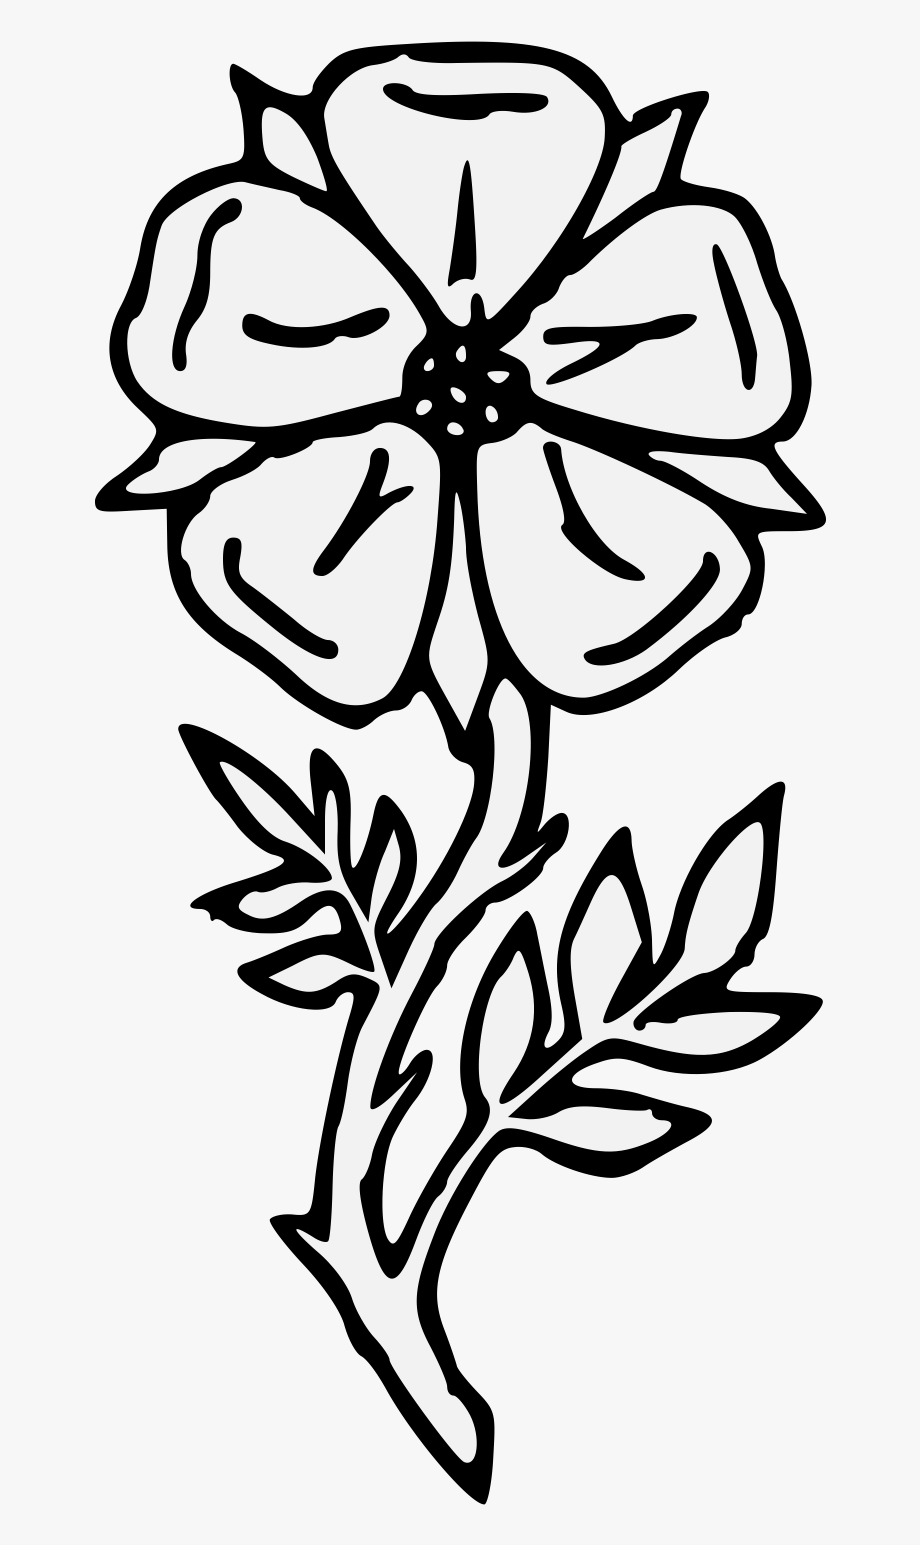 traceable pictures of flowers image result for flower tracing drawings ink art of flowers pictures traceable